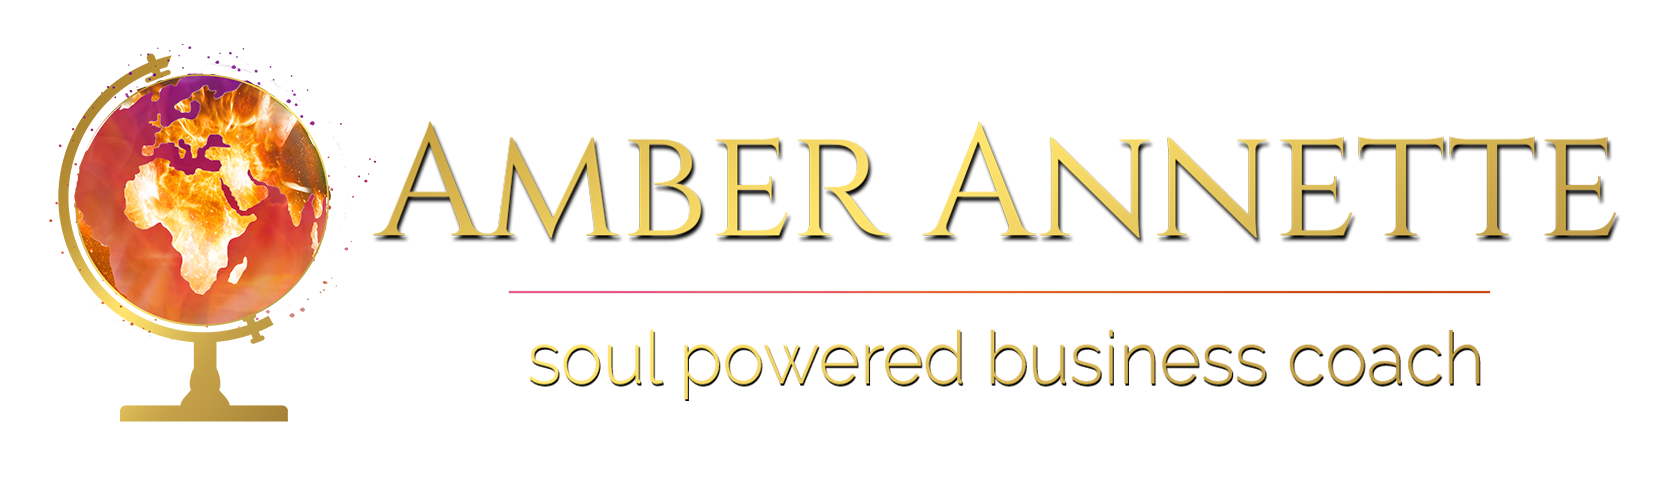 Amber Annette | Soul Powered Business Coach